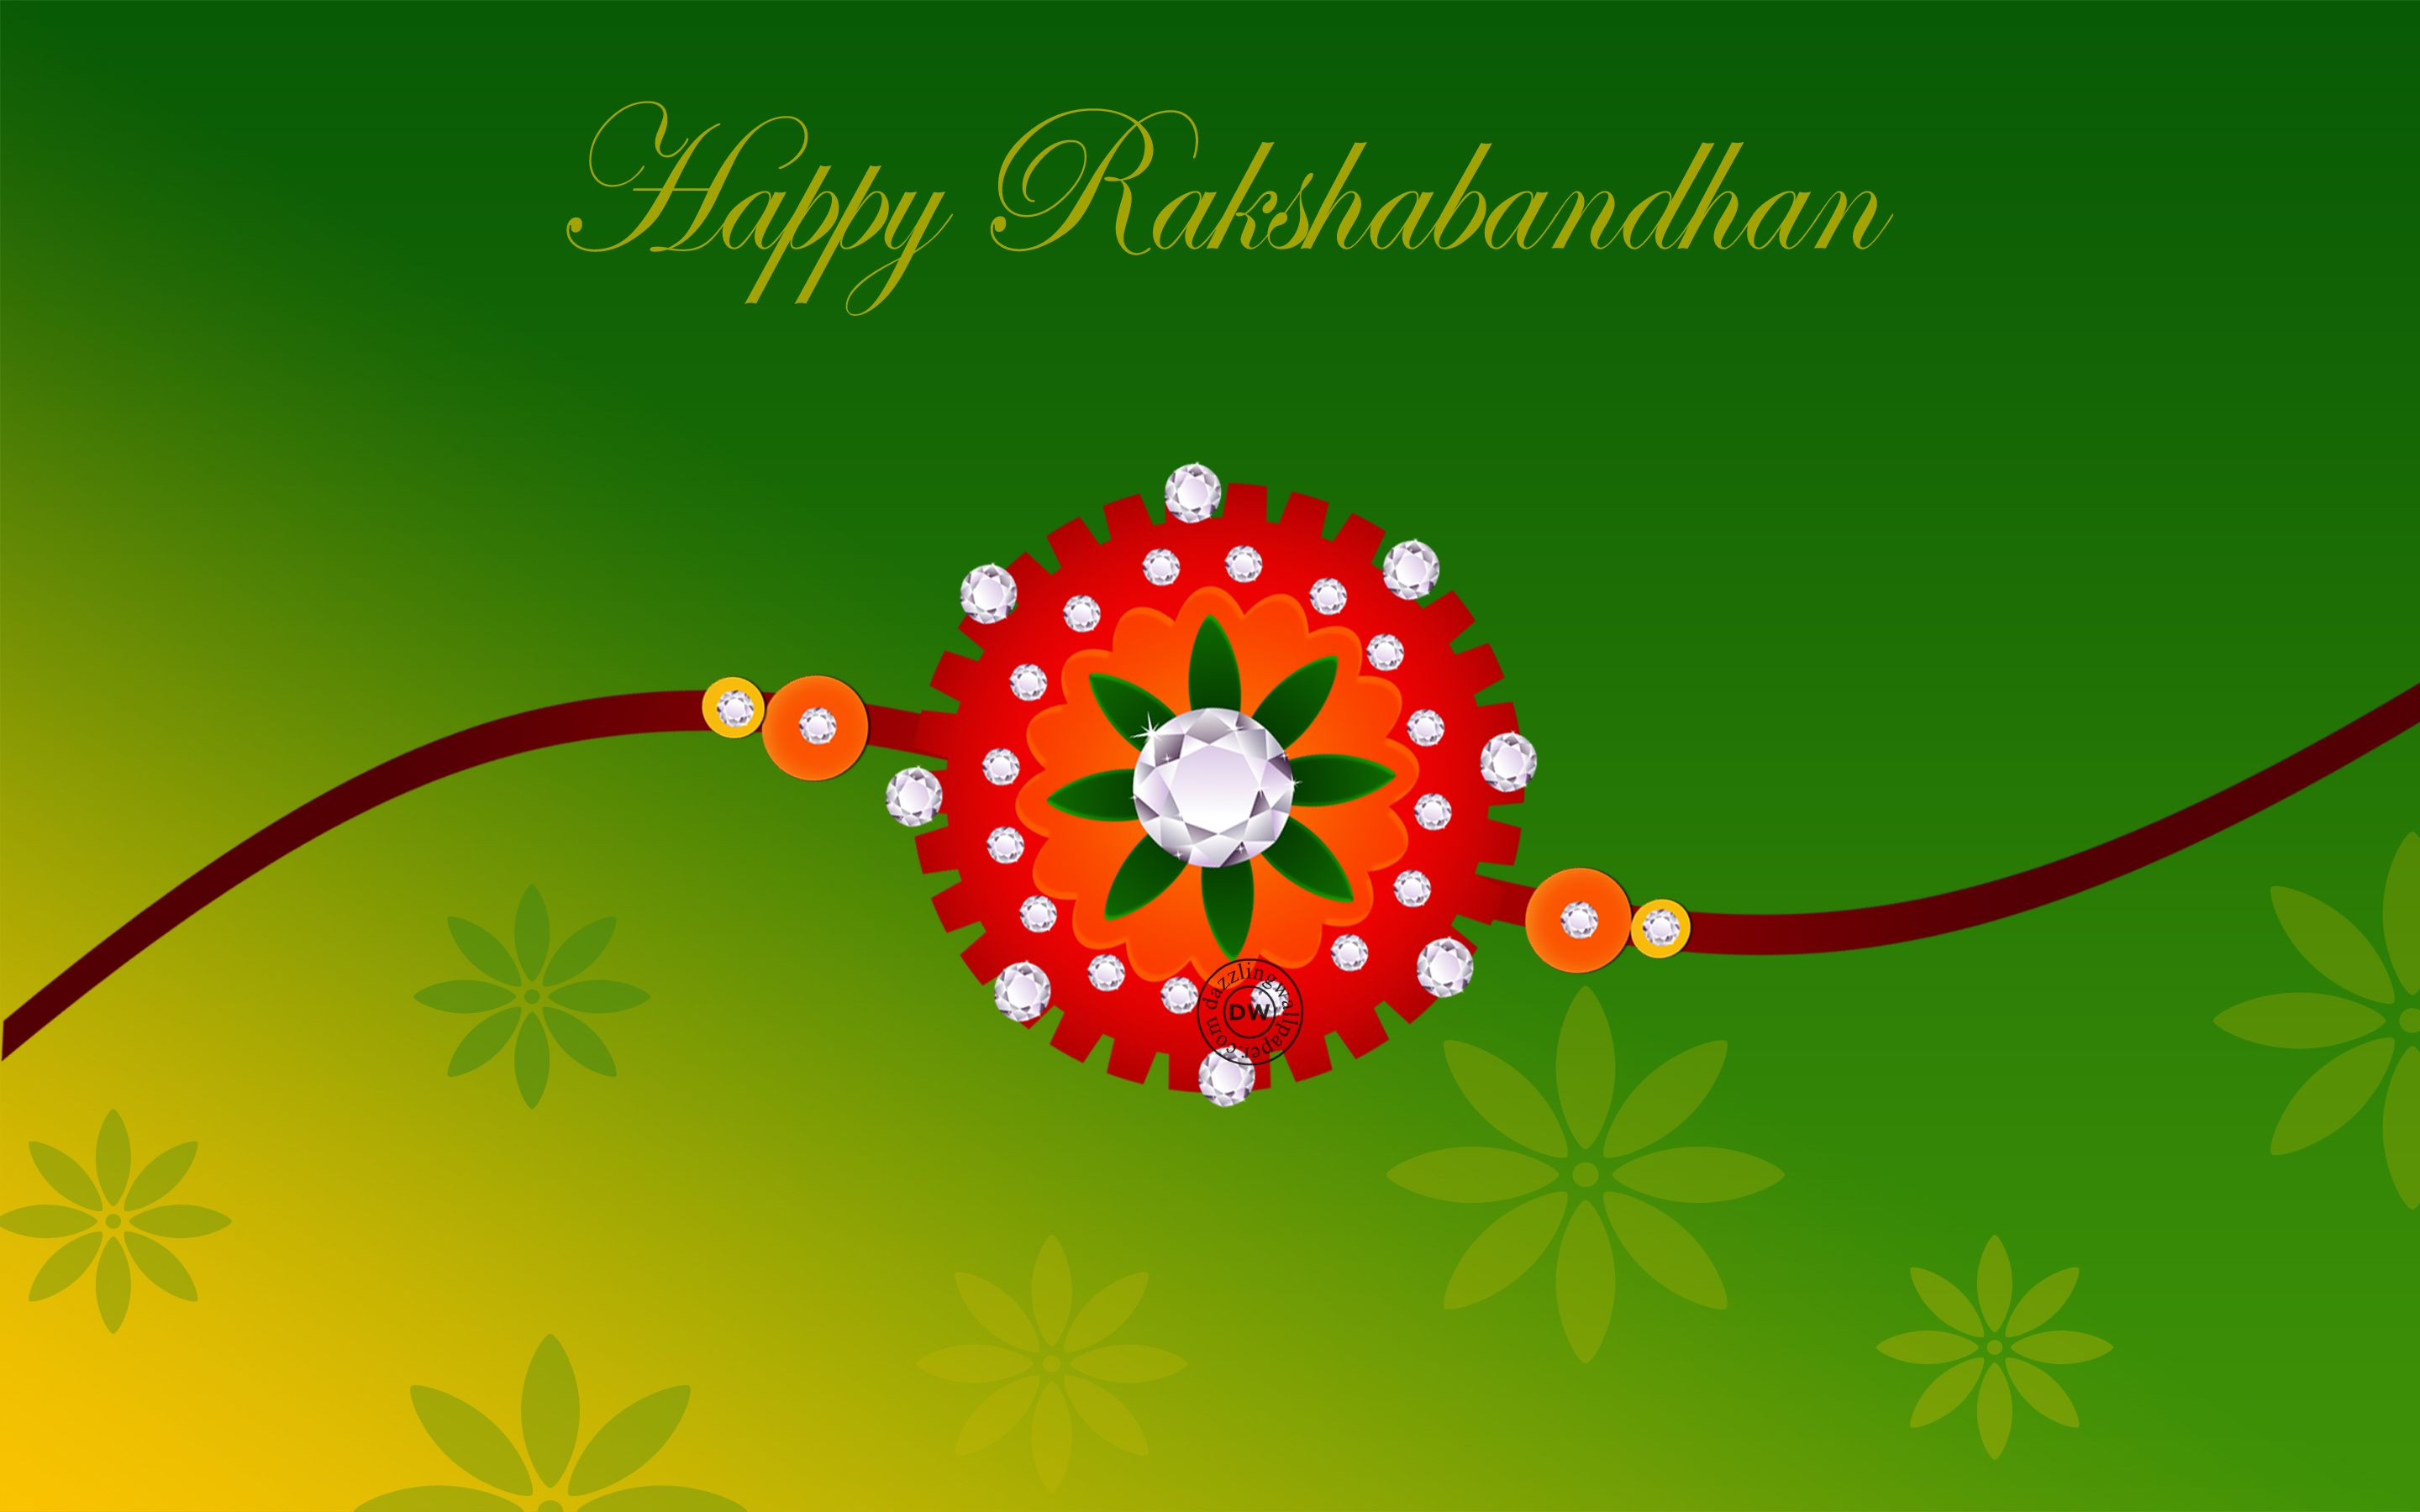 Love Wallpapers For Brother : Happy Raksha Bandhan , Rakhi, Brother. Sister, Love , Wallpapers, images, Greetings, Pictures ...